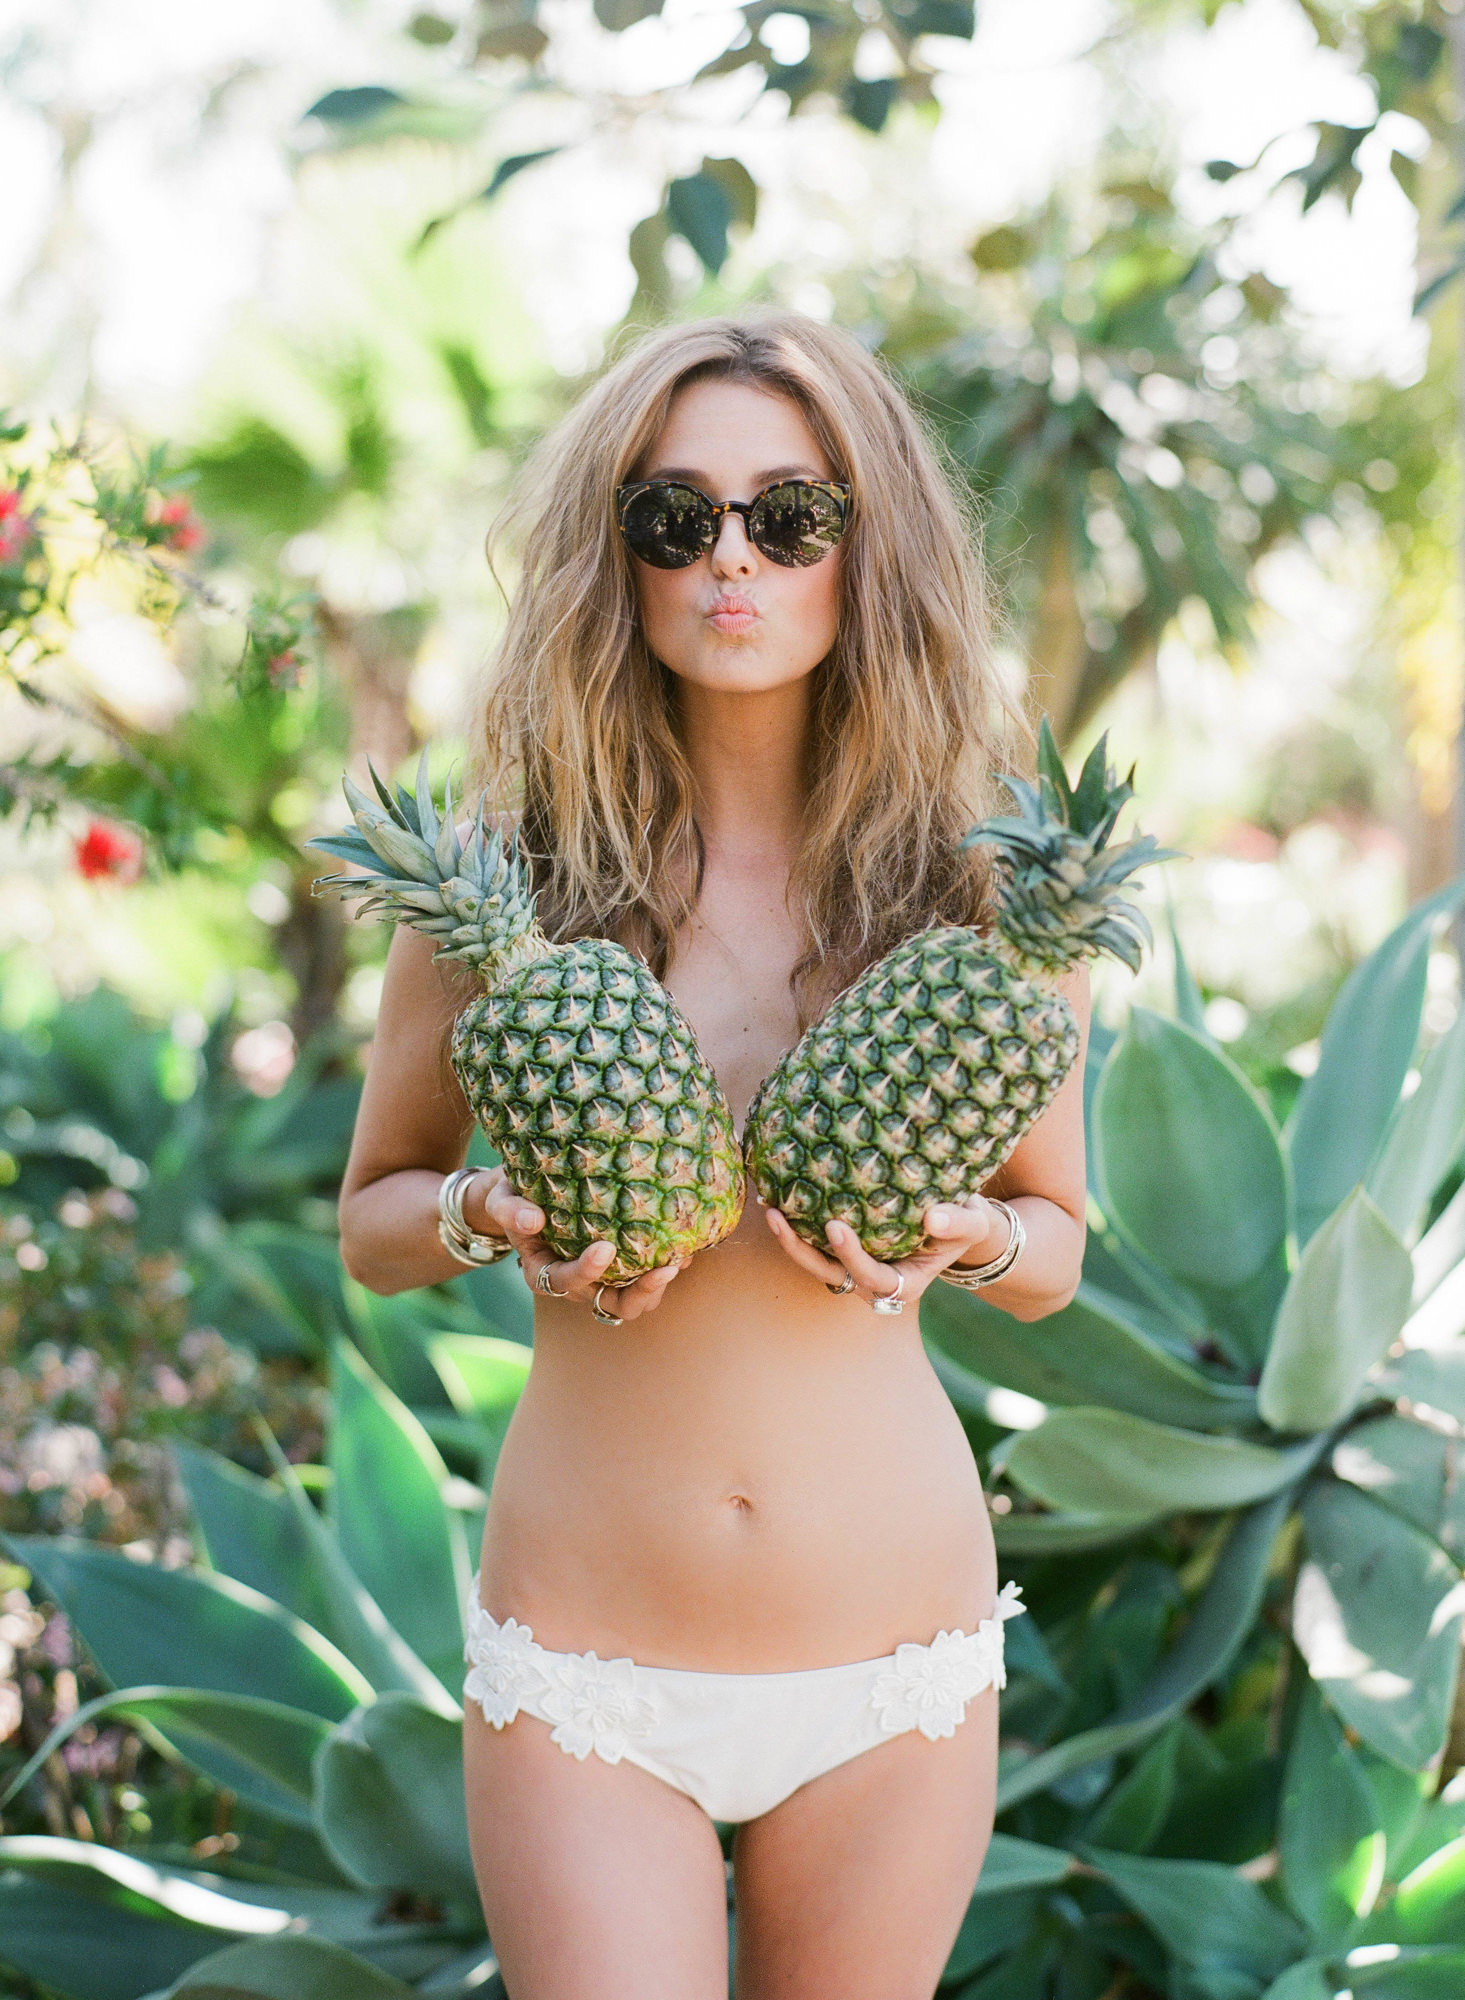 Funny and sexy portrait of bride holding pineapples - Greg Finck Photography